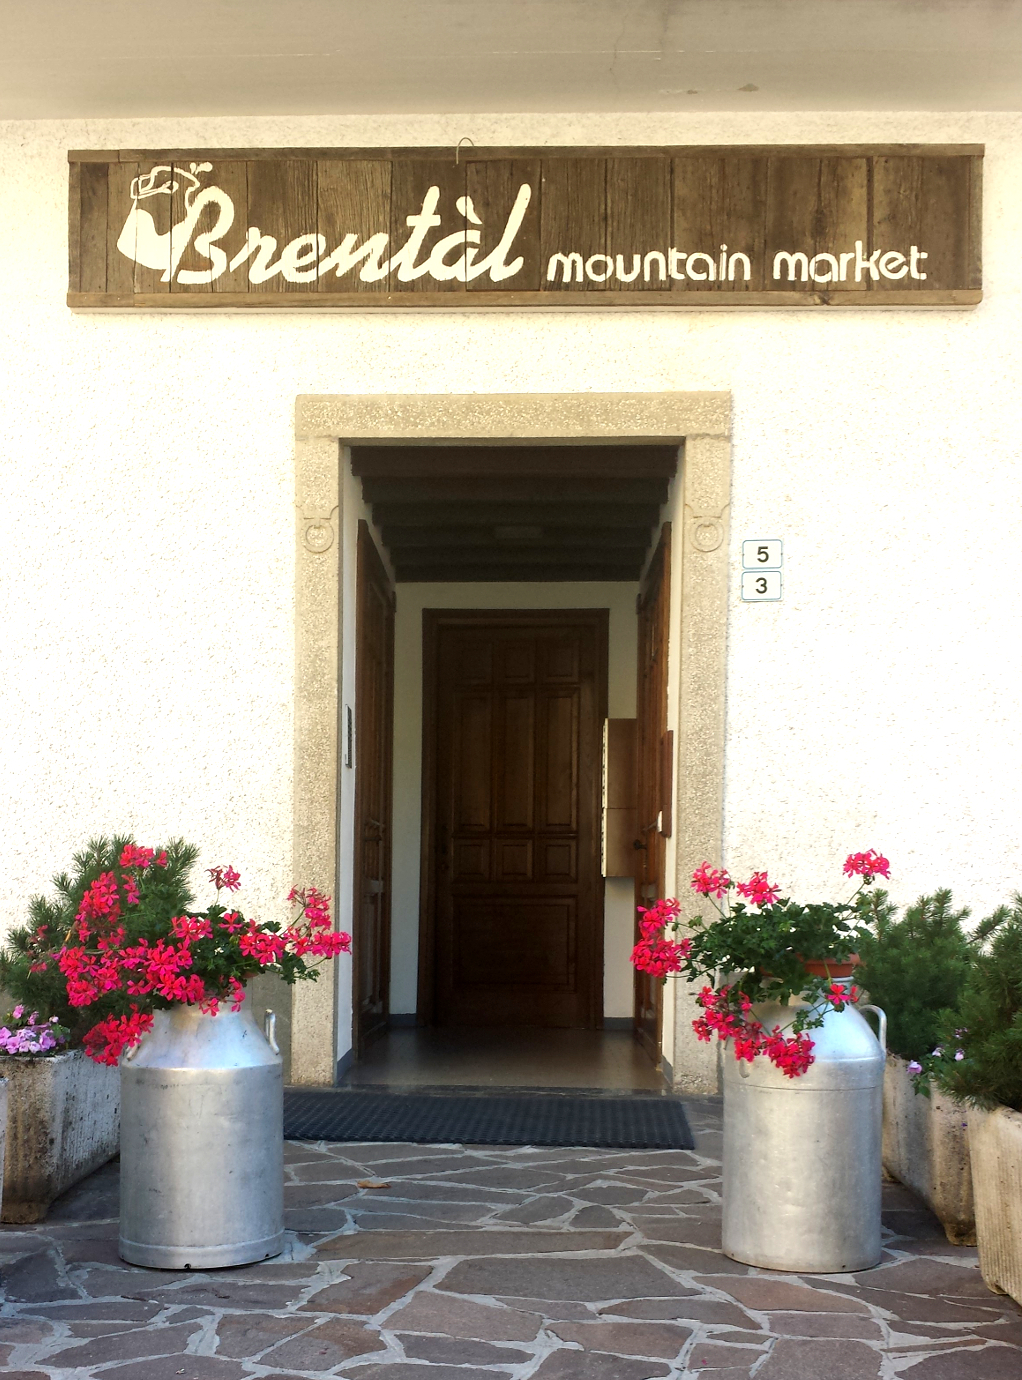 Brental mountain market